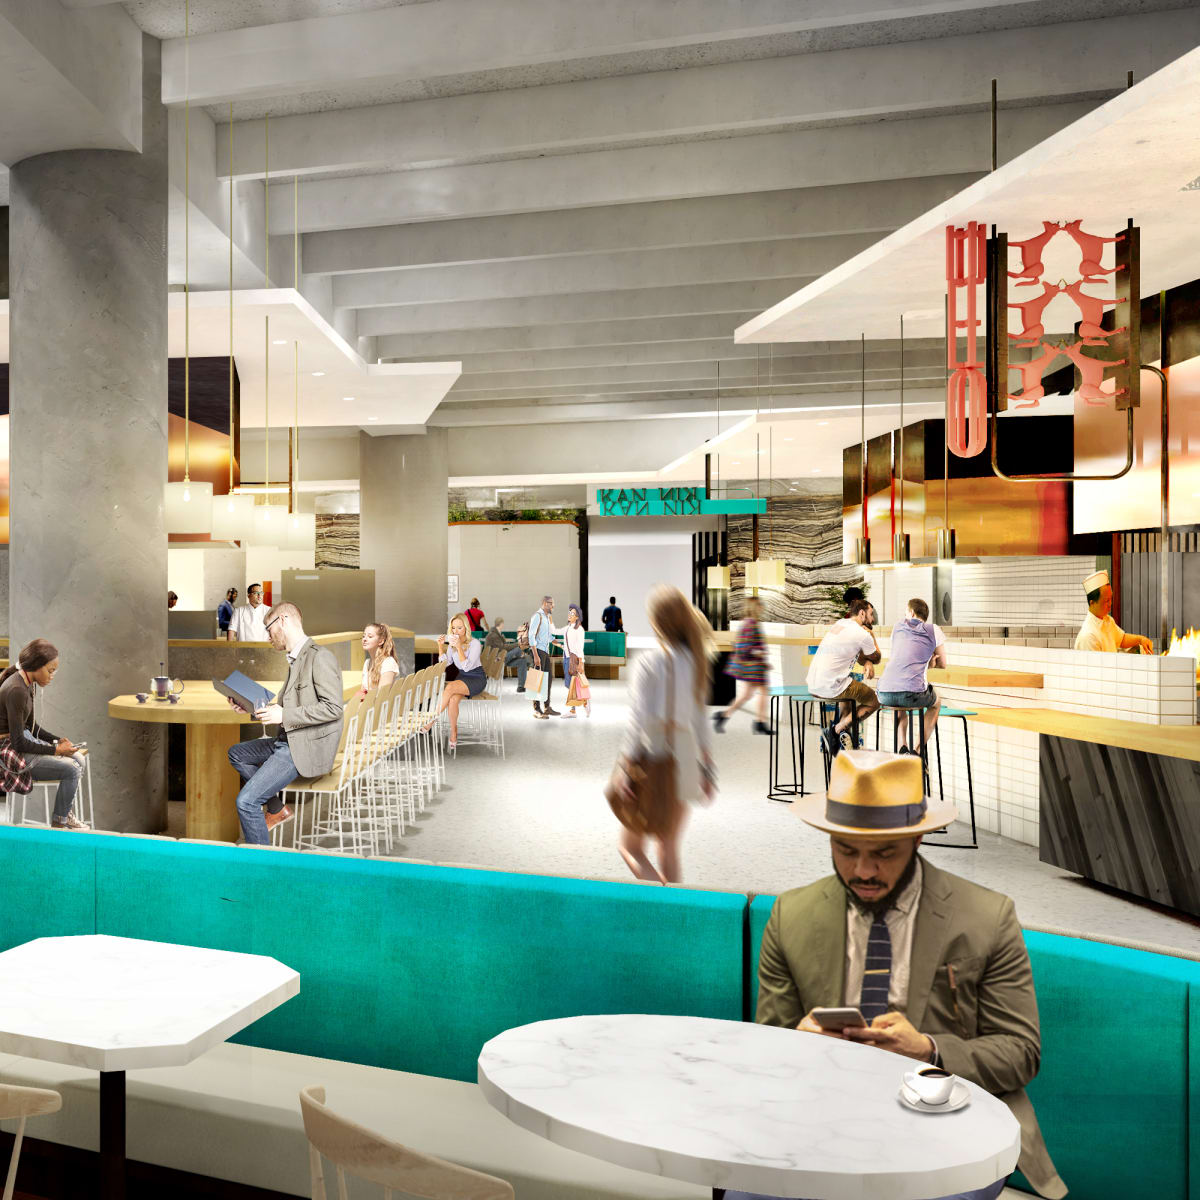 Capitol Tower Understory culinary market